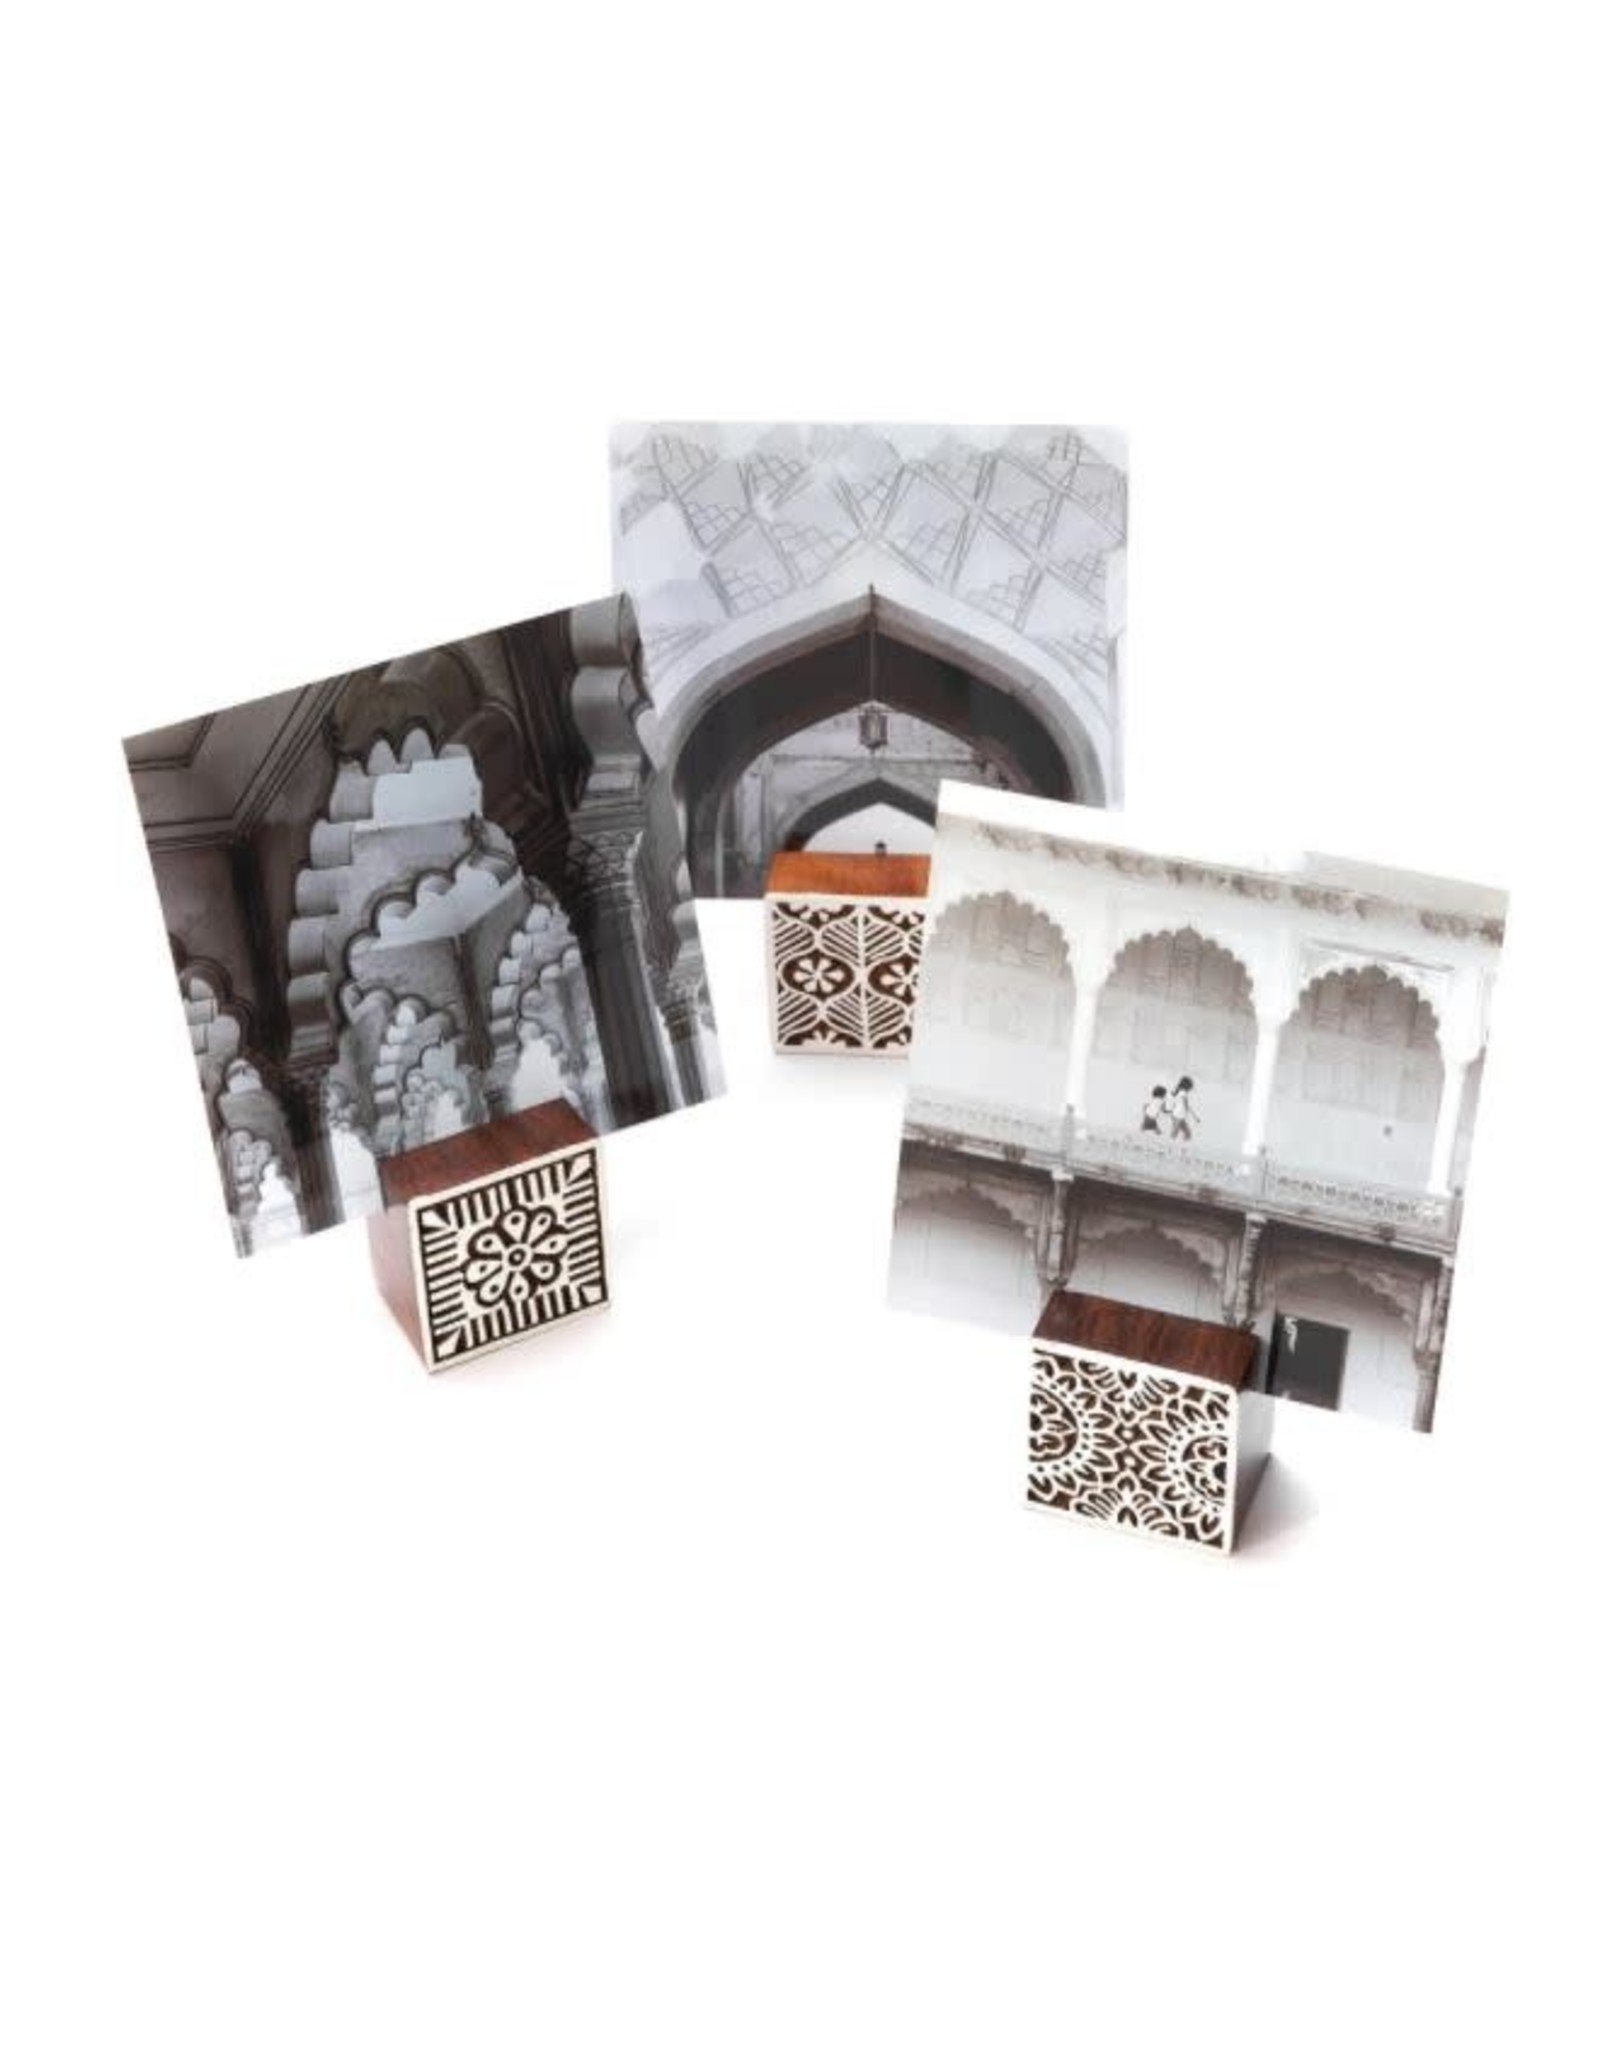 Matr Boomie Hima Bindu Photo Blocks, assorted